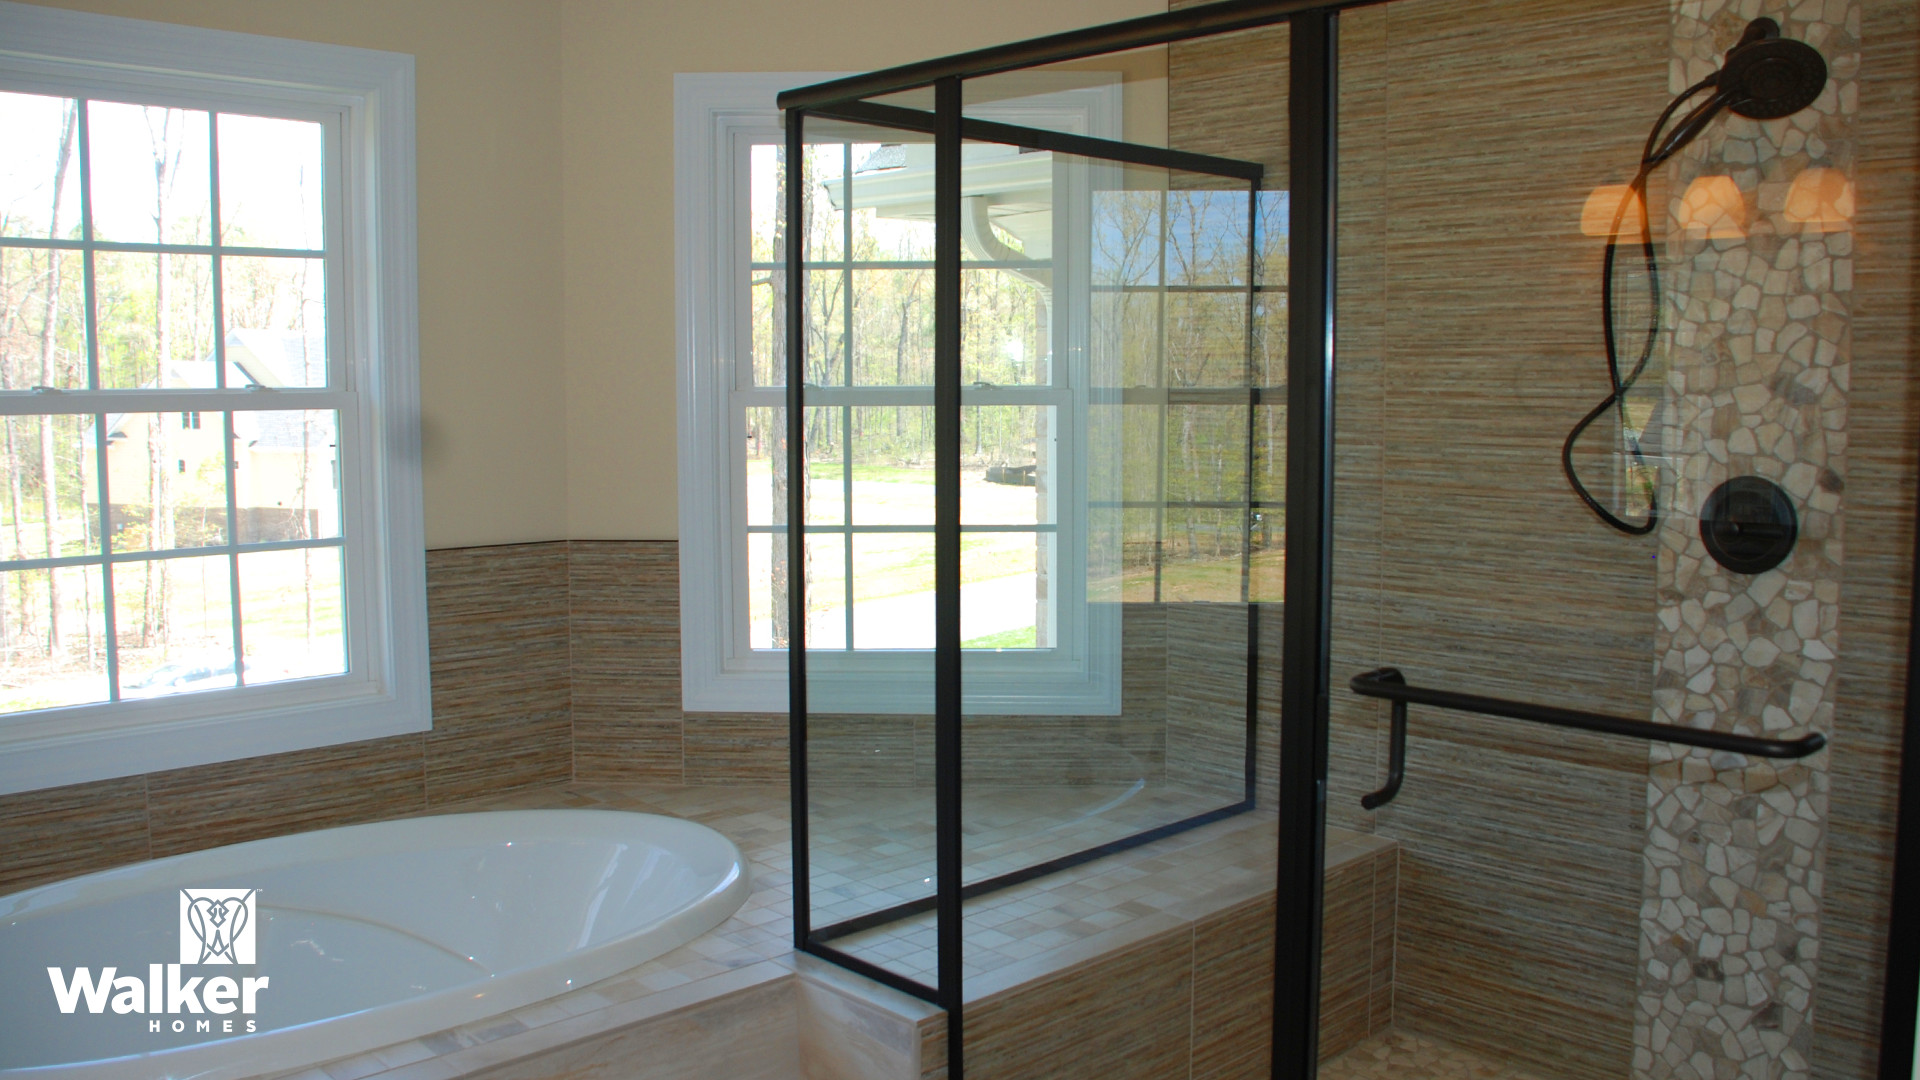 A Master Bath from a custom home design by Walker Homes in Glen Allen, Virginia